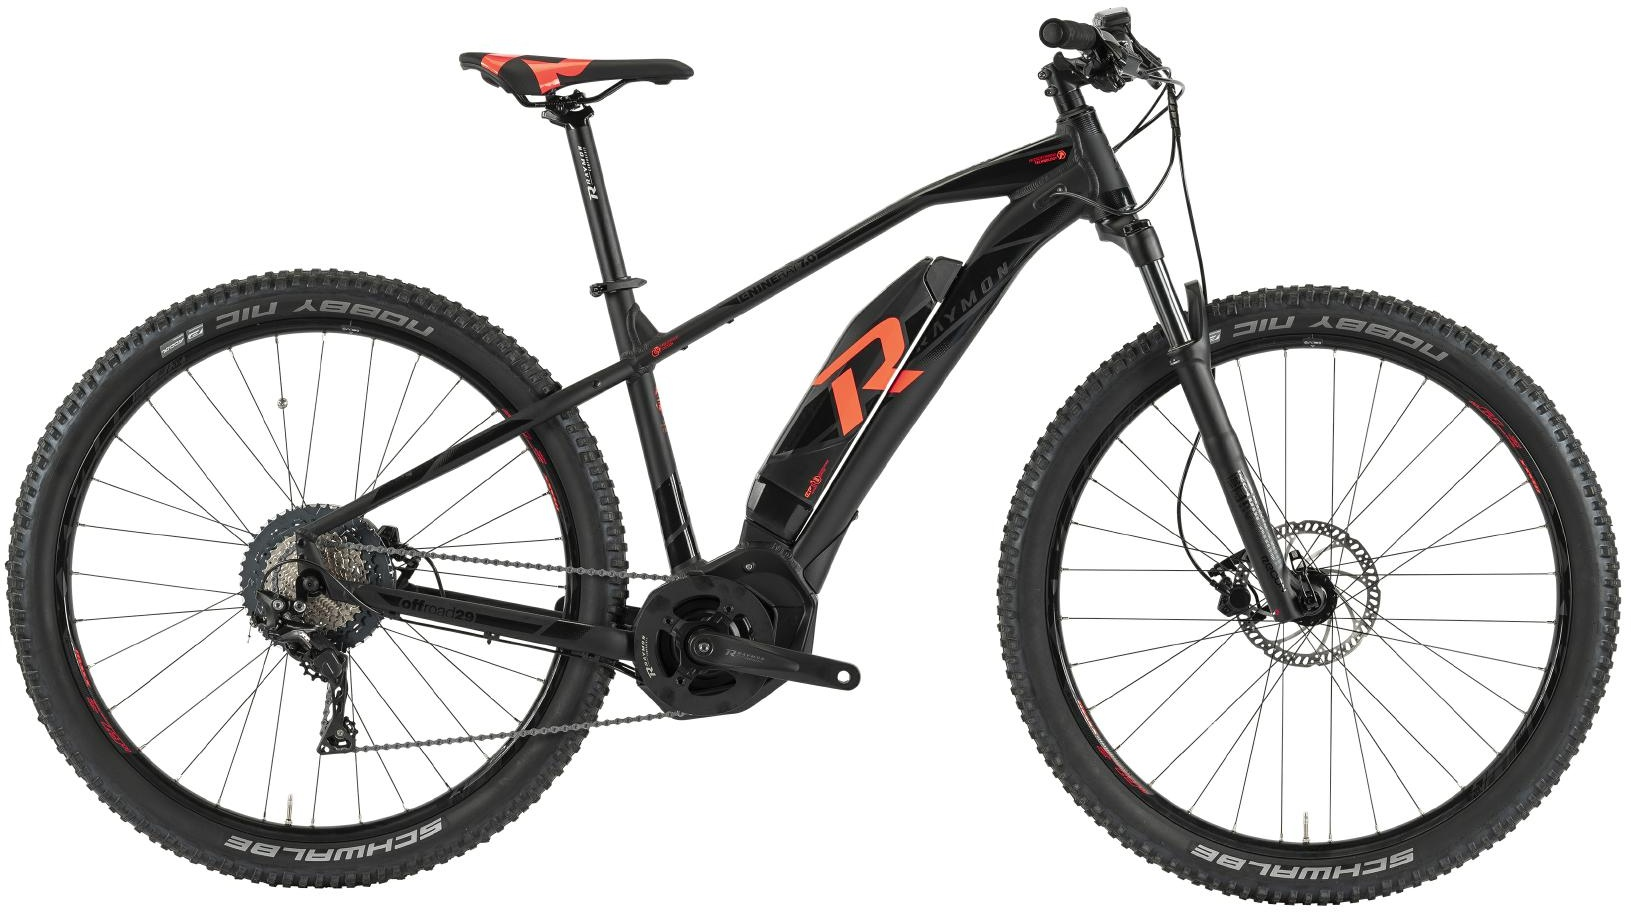 R Raymon E-Nineray - e-Mountainbike - 2019